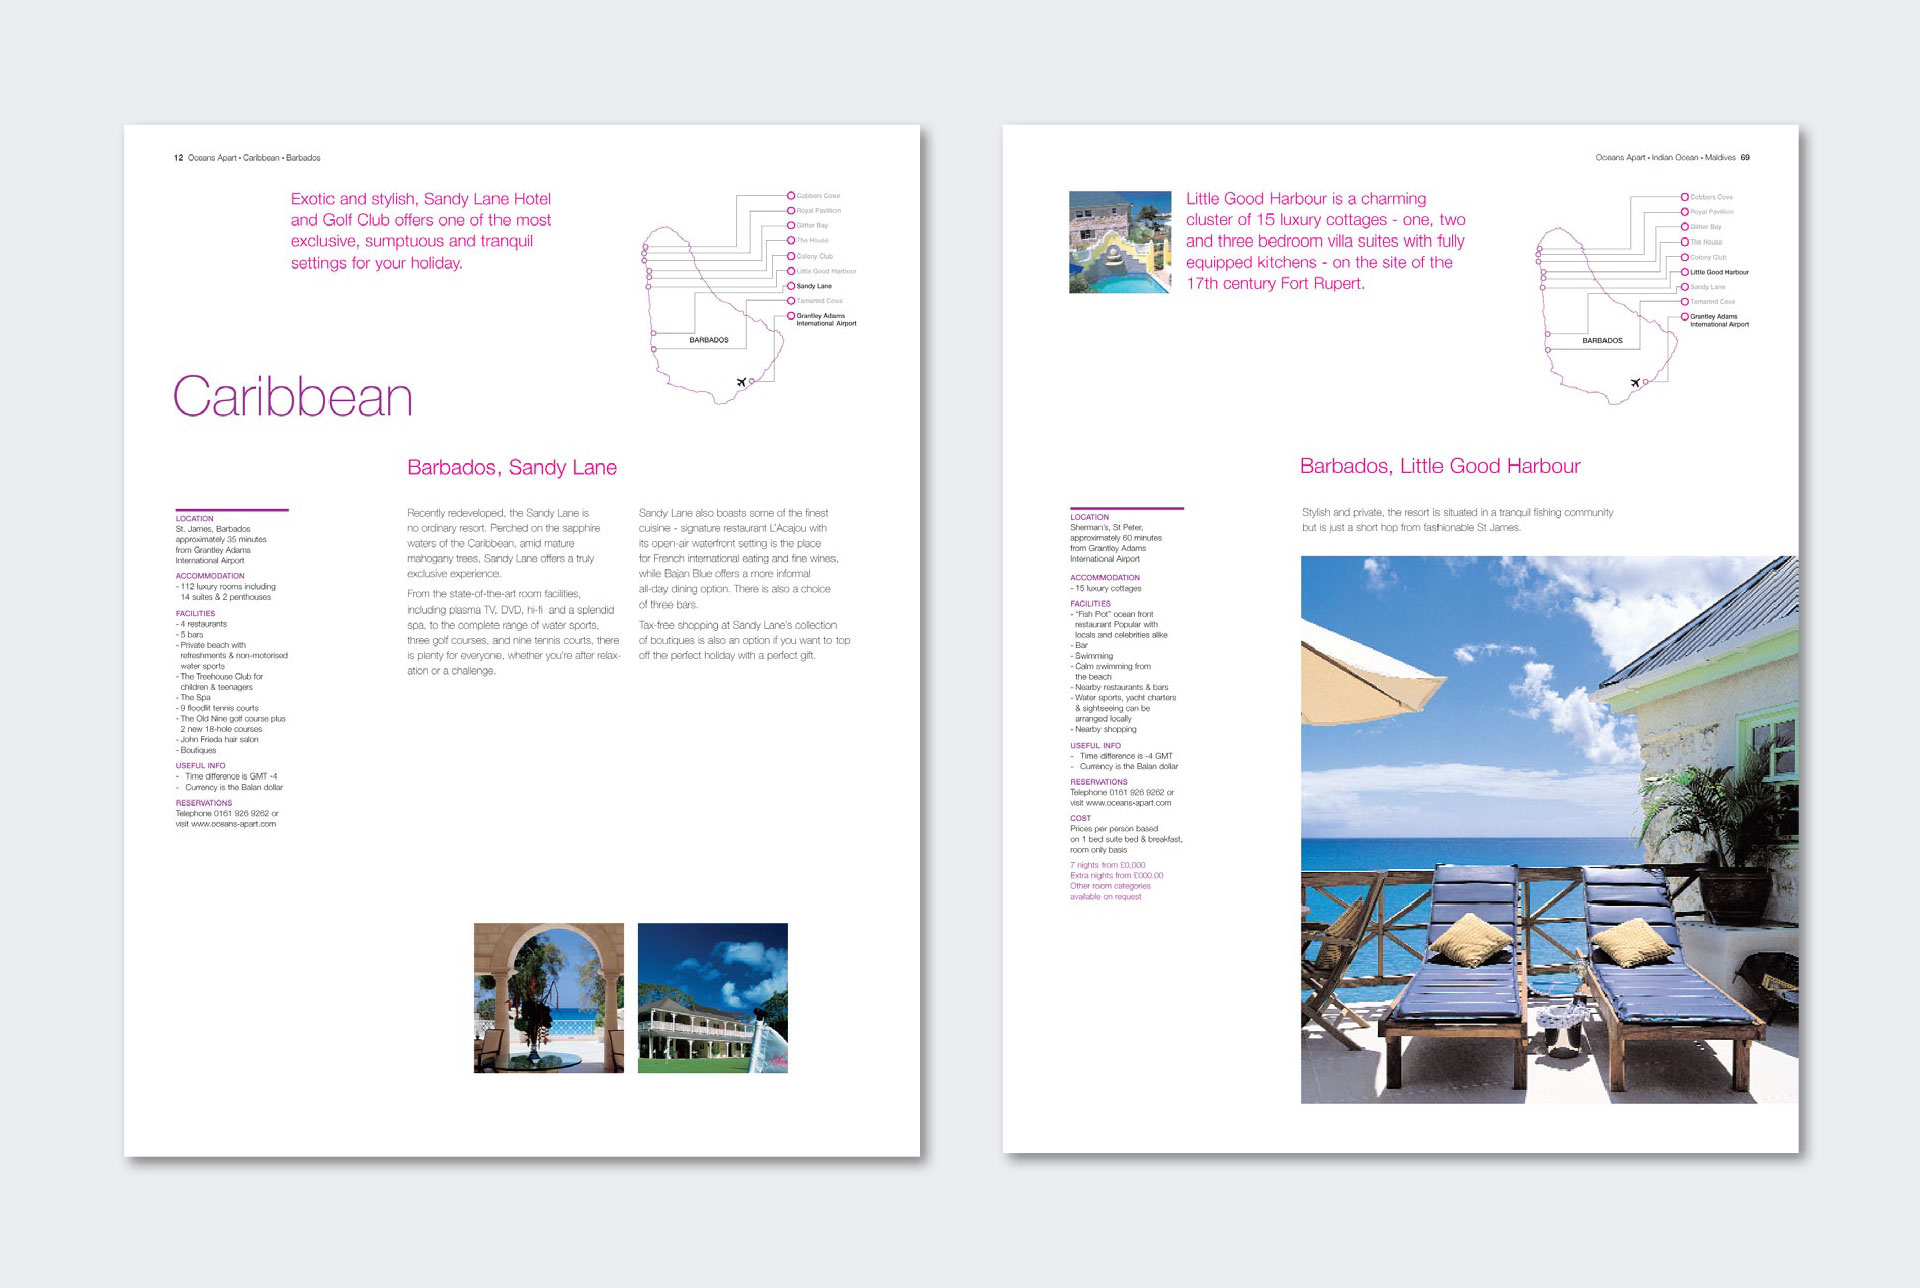 oceans-apart-travel-brochure-internal-pages.jpg